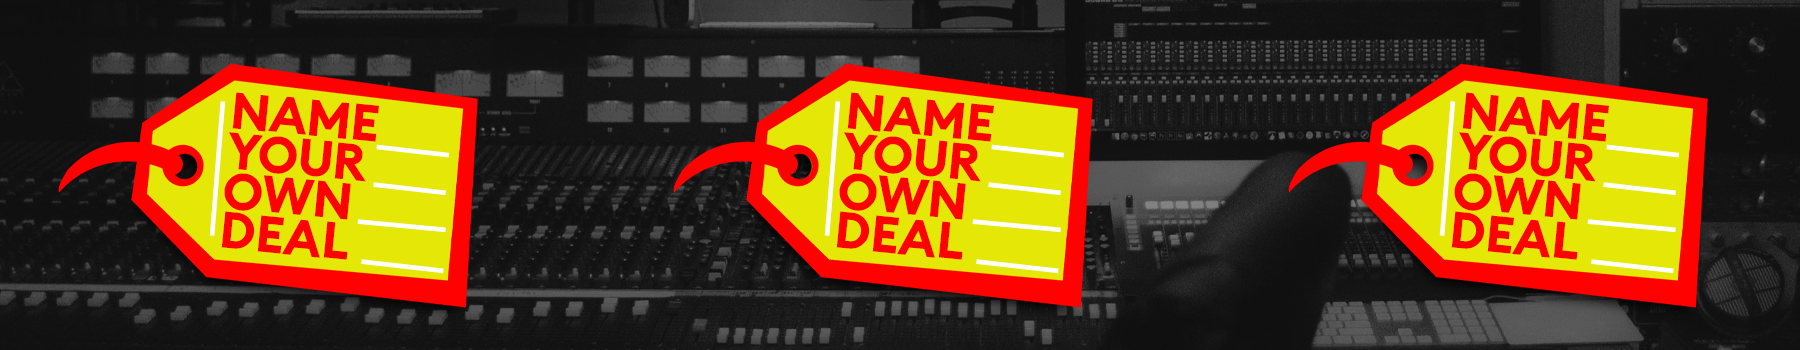 Name Your Deal